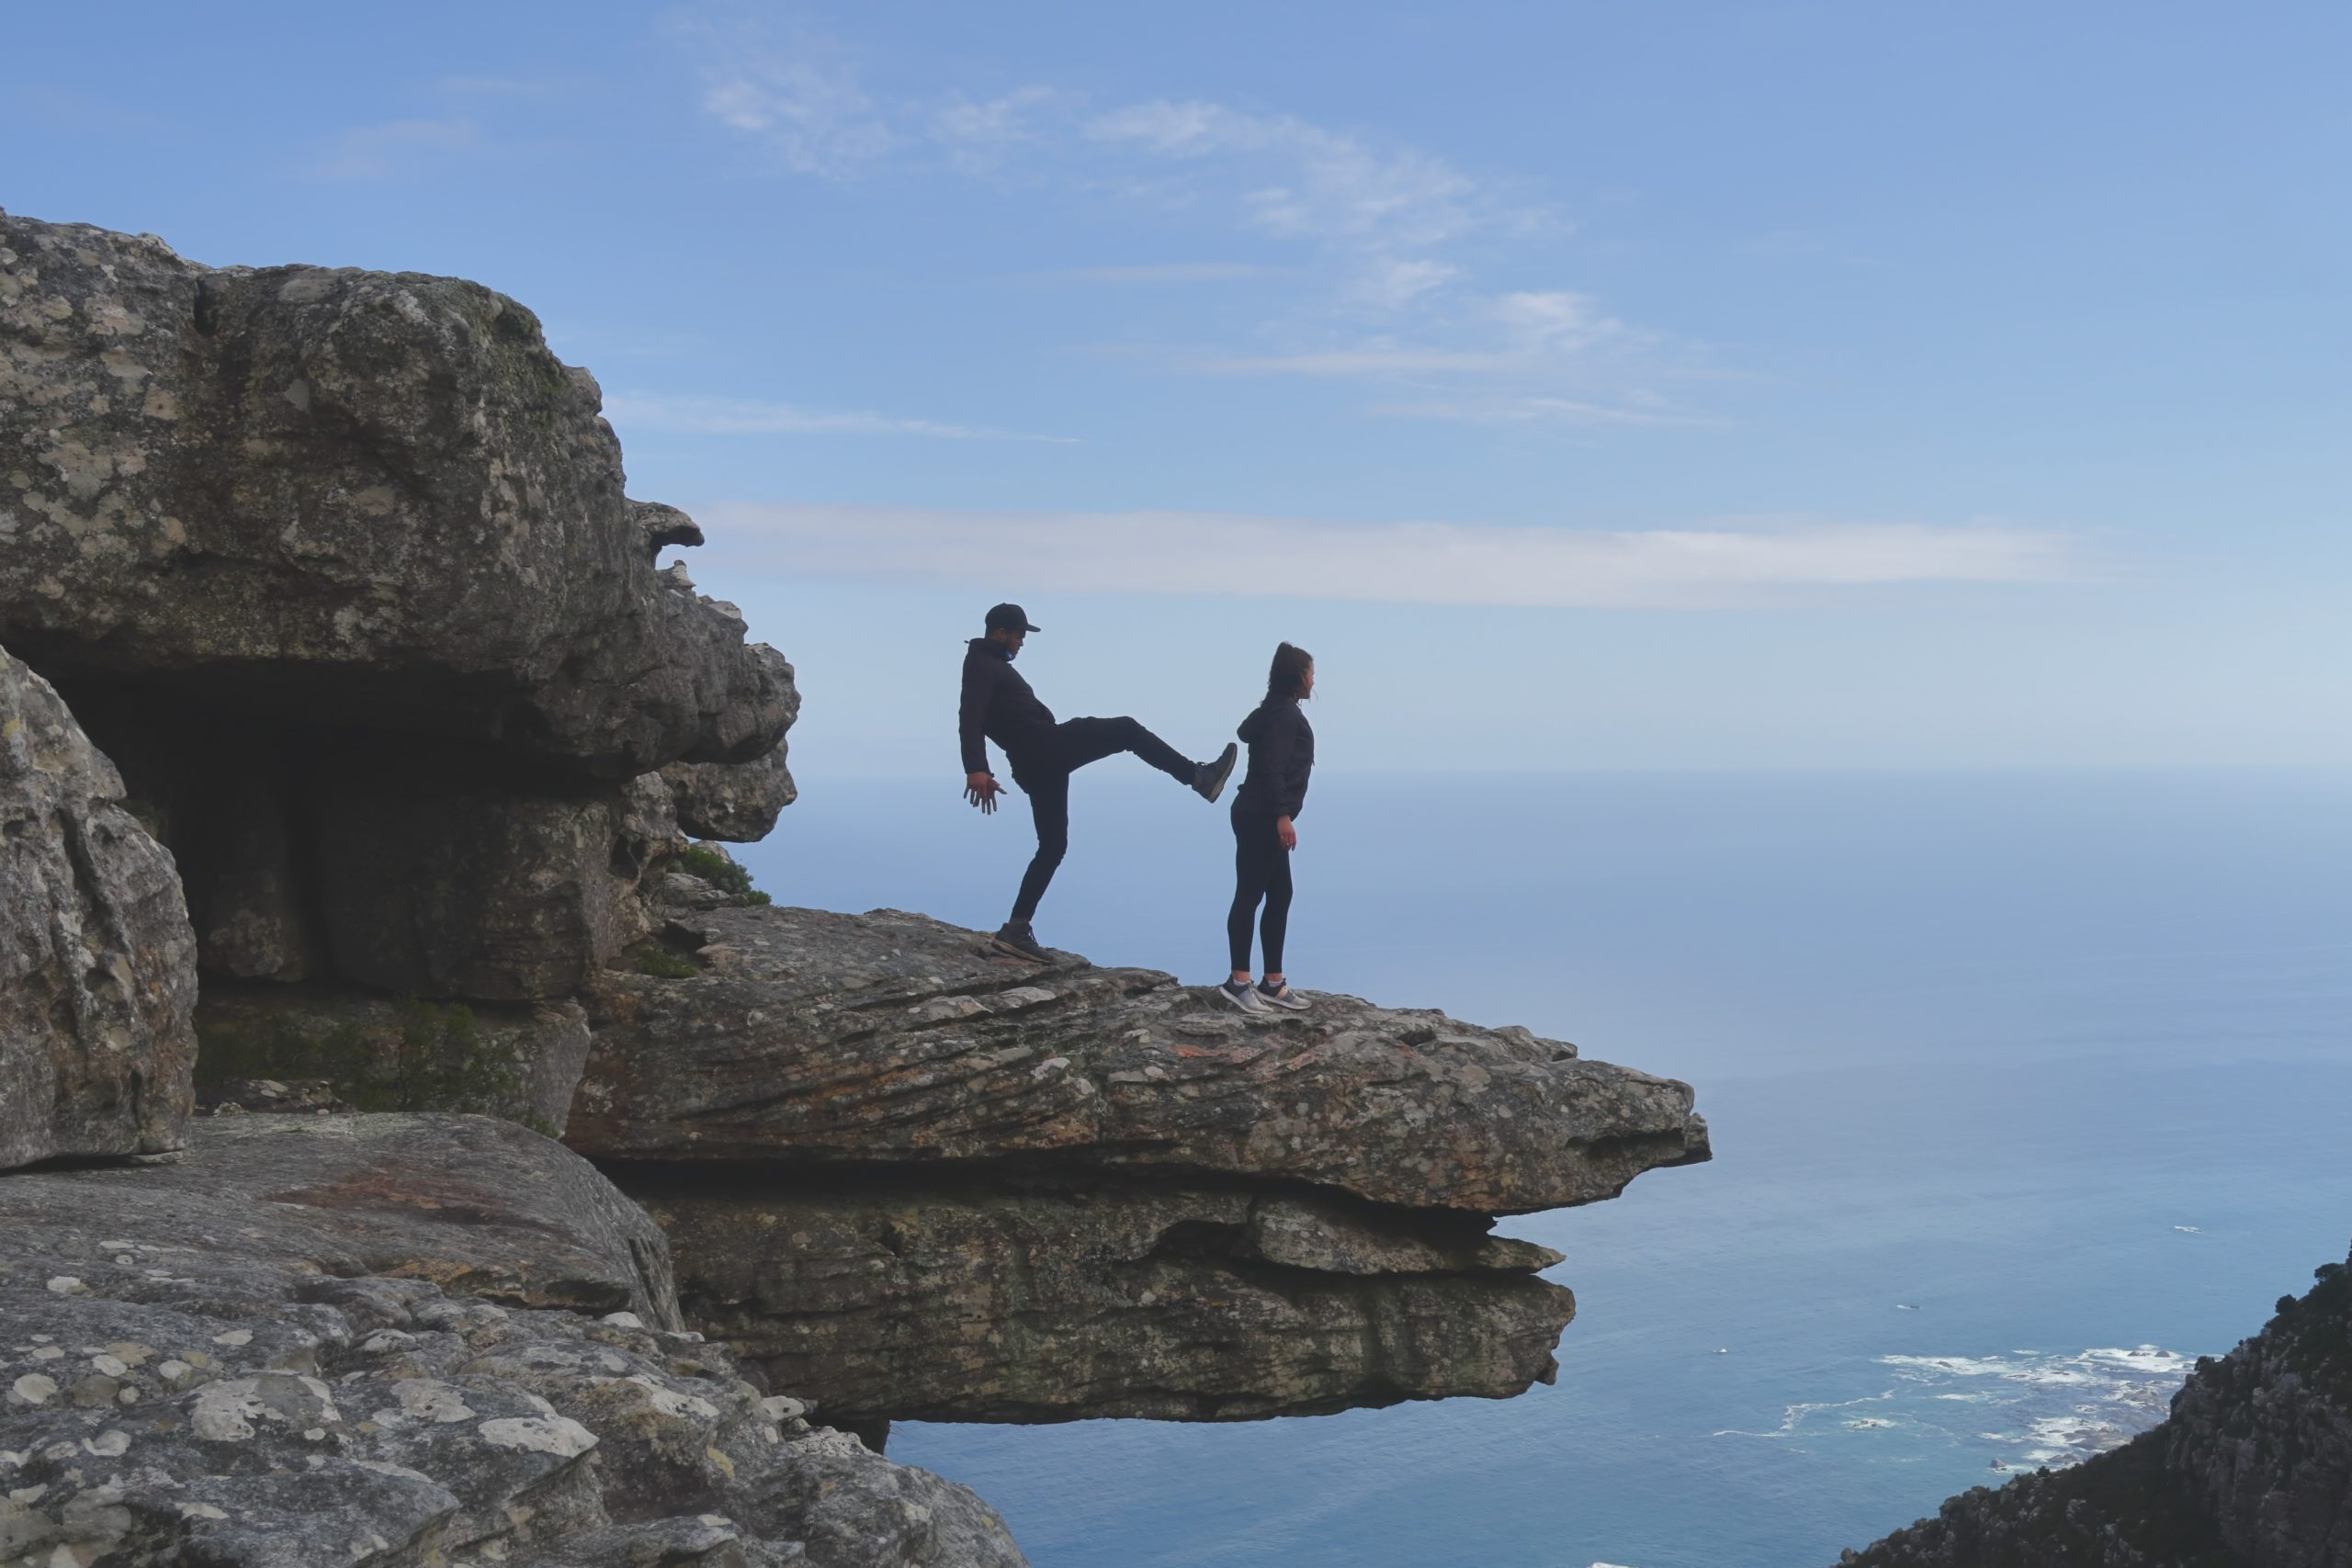 Image of person about to be pushed off cliff representing a boss, leader, supervisor, manger being too pushy.